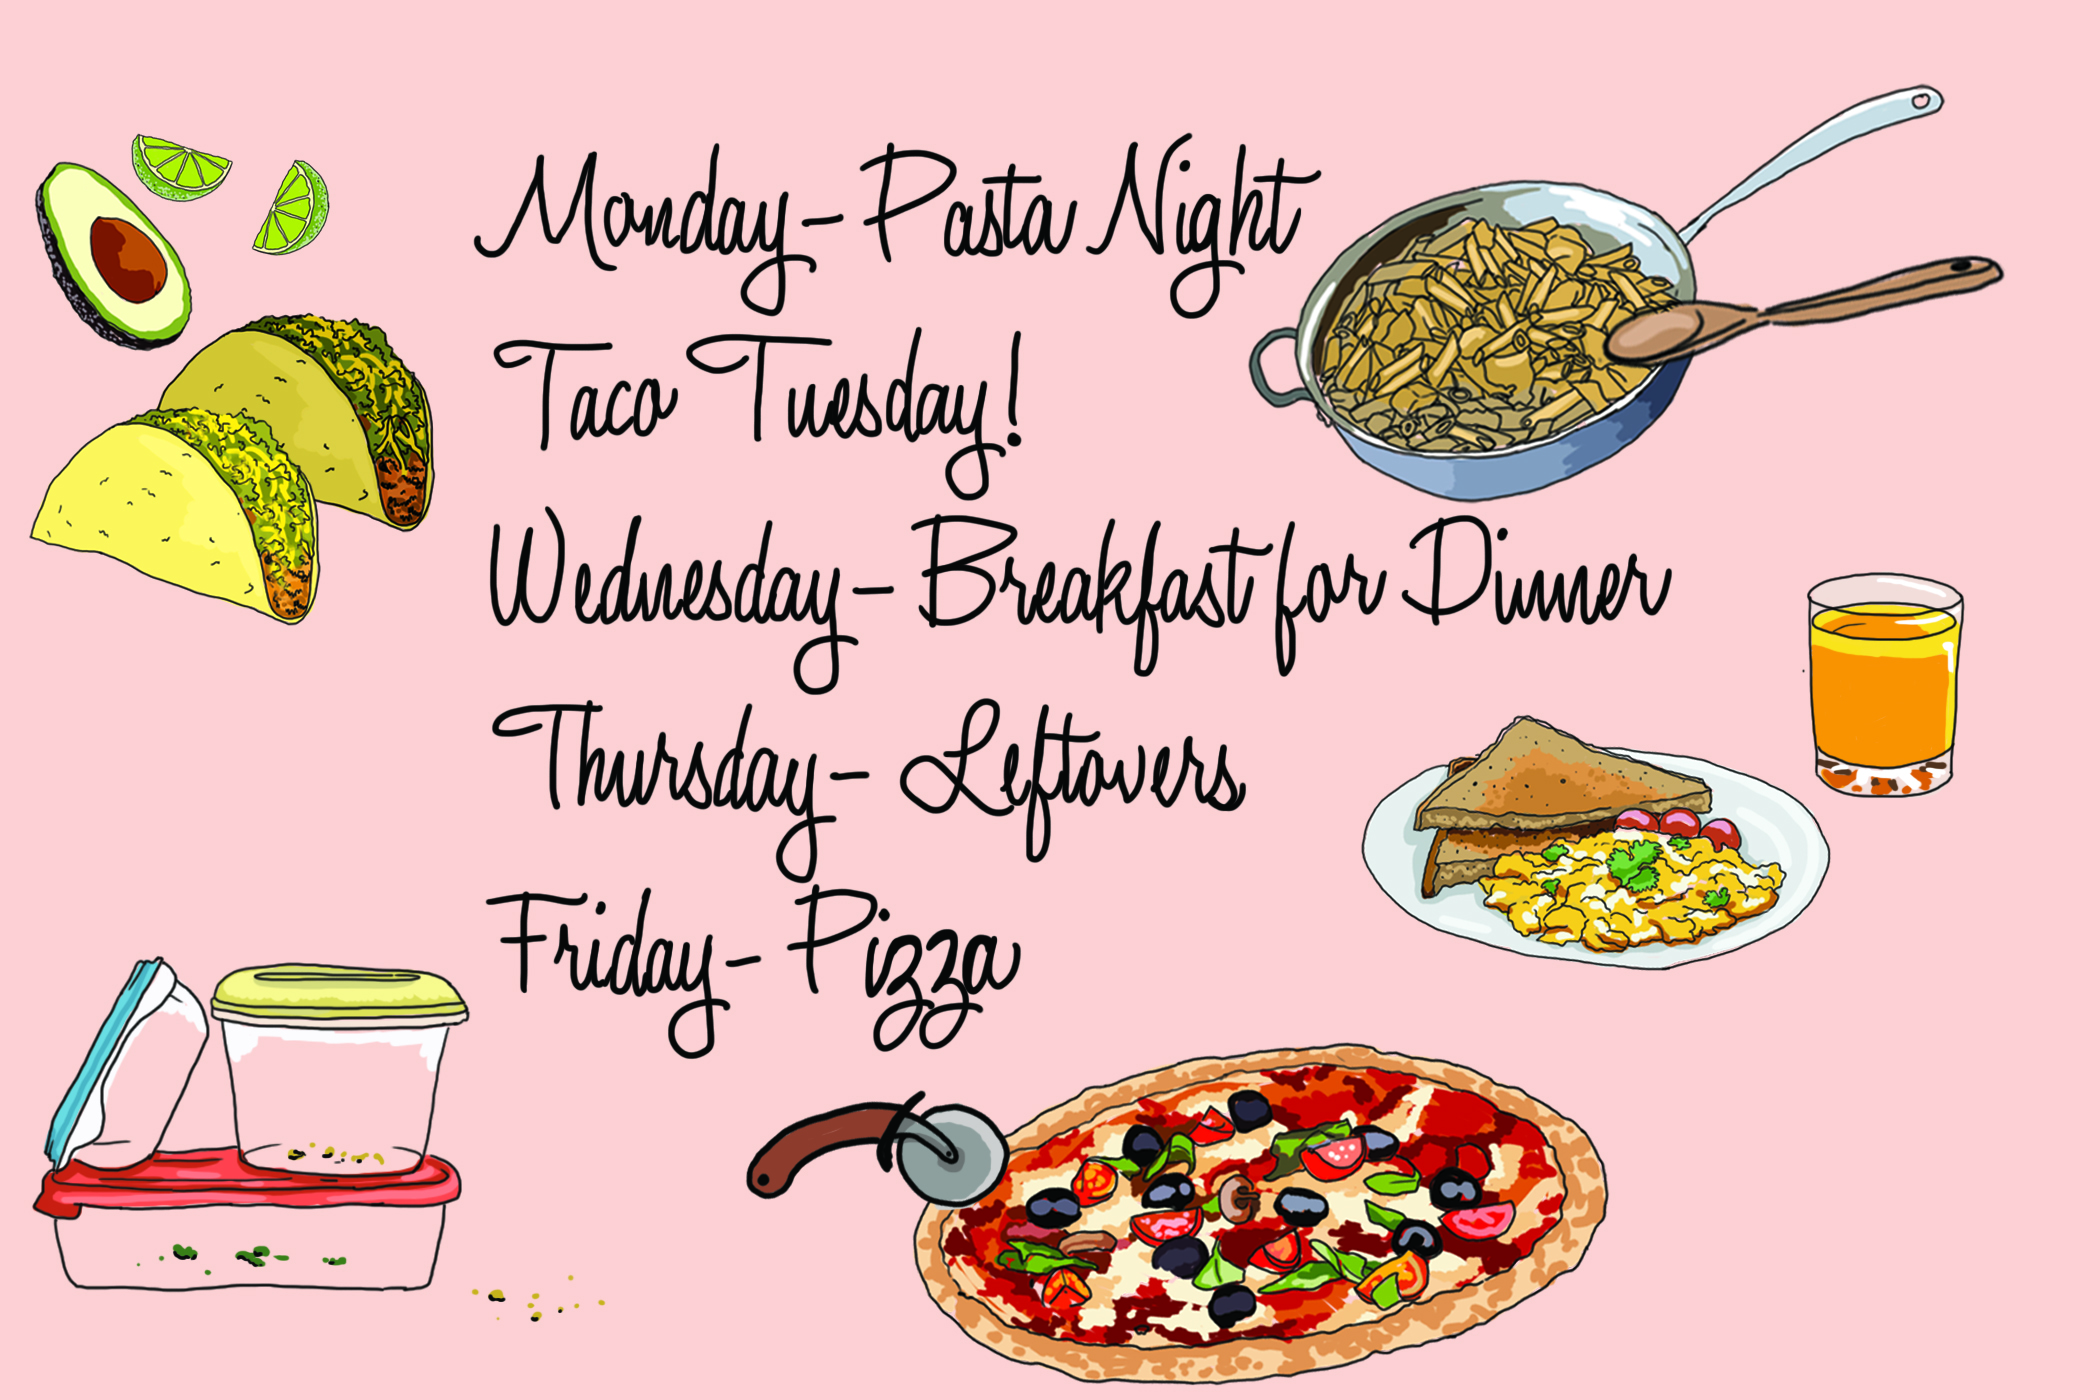 5 Nights, 5 Dinners: My Simple Weekly Meal Plan.